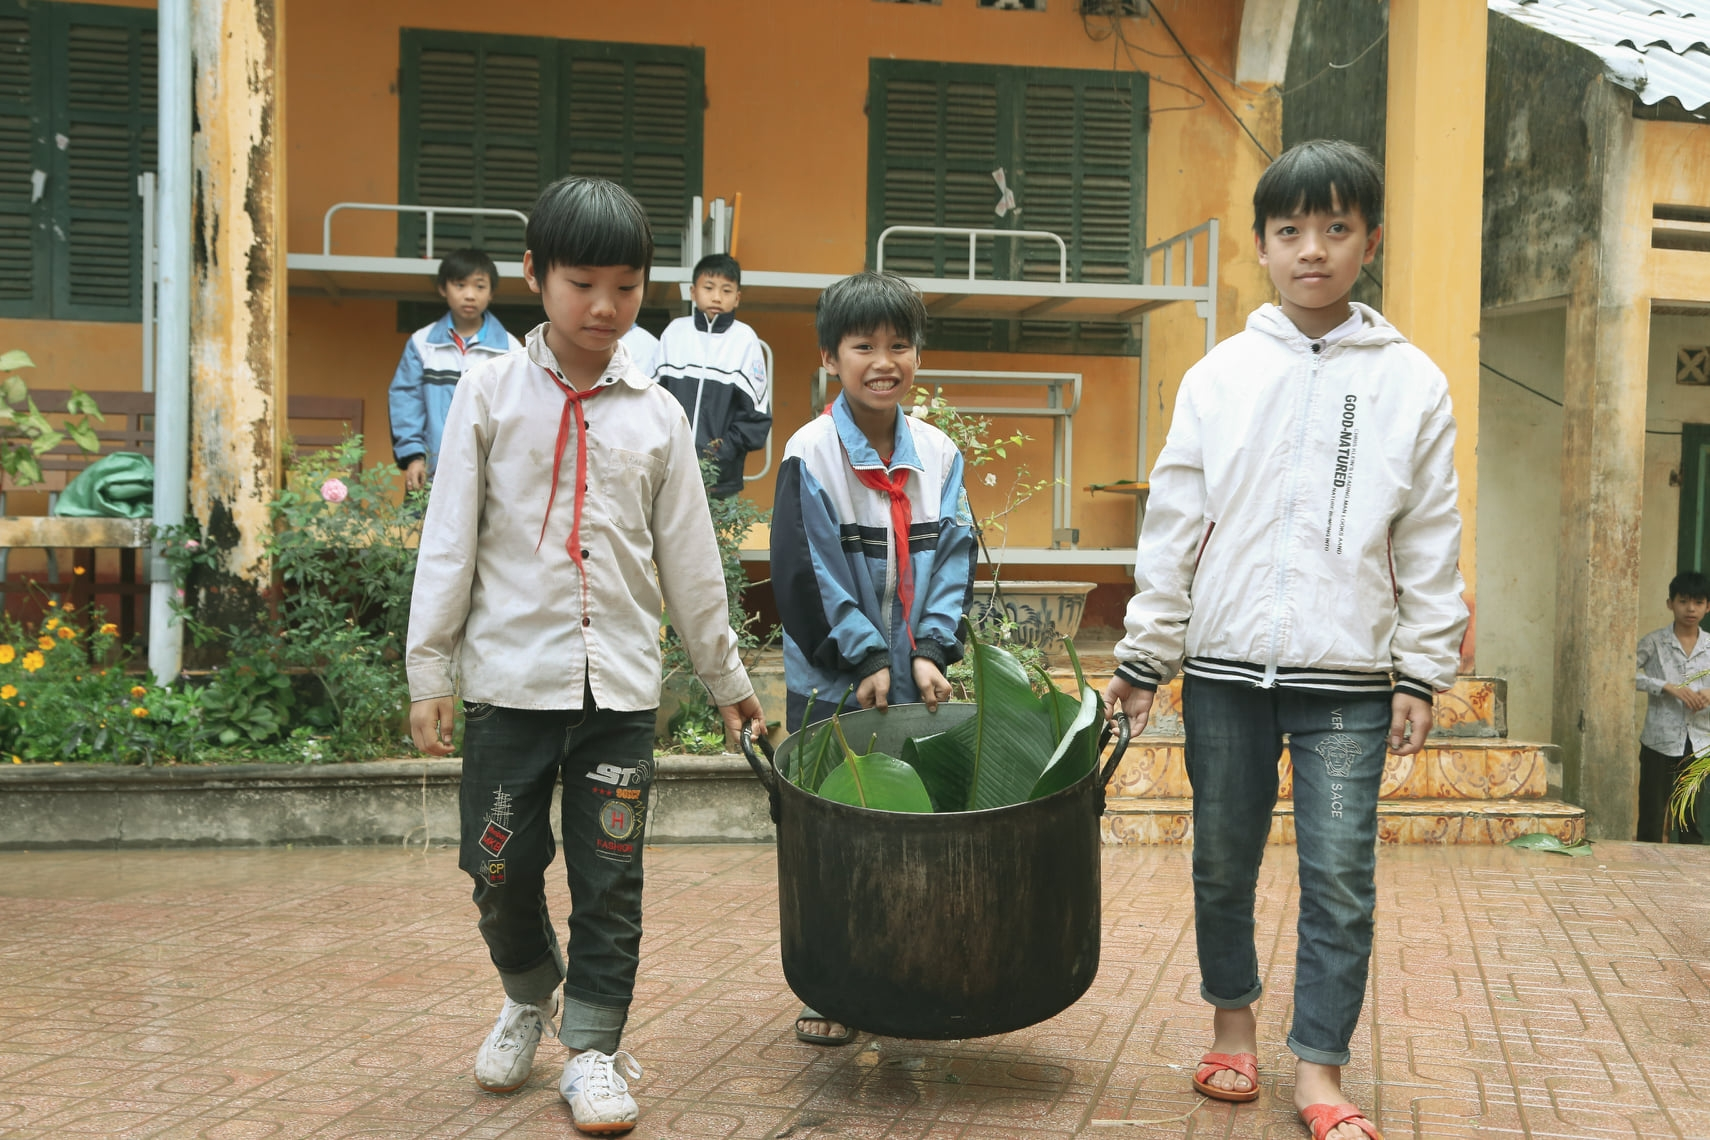 World Vision presents hundreds of Tet gifts to the needy in Hoa Binh